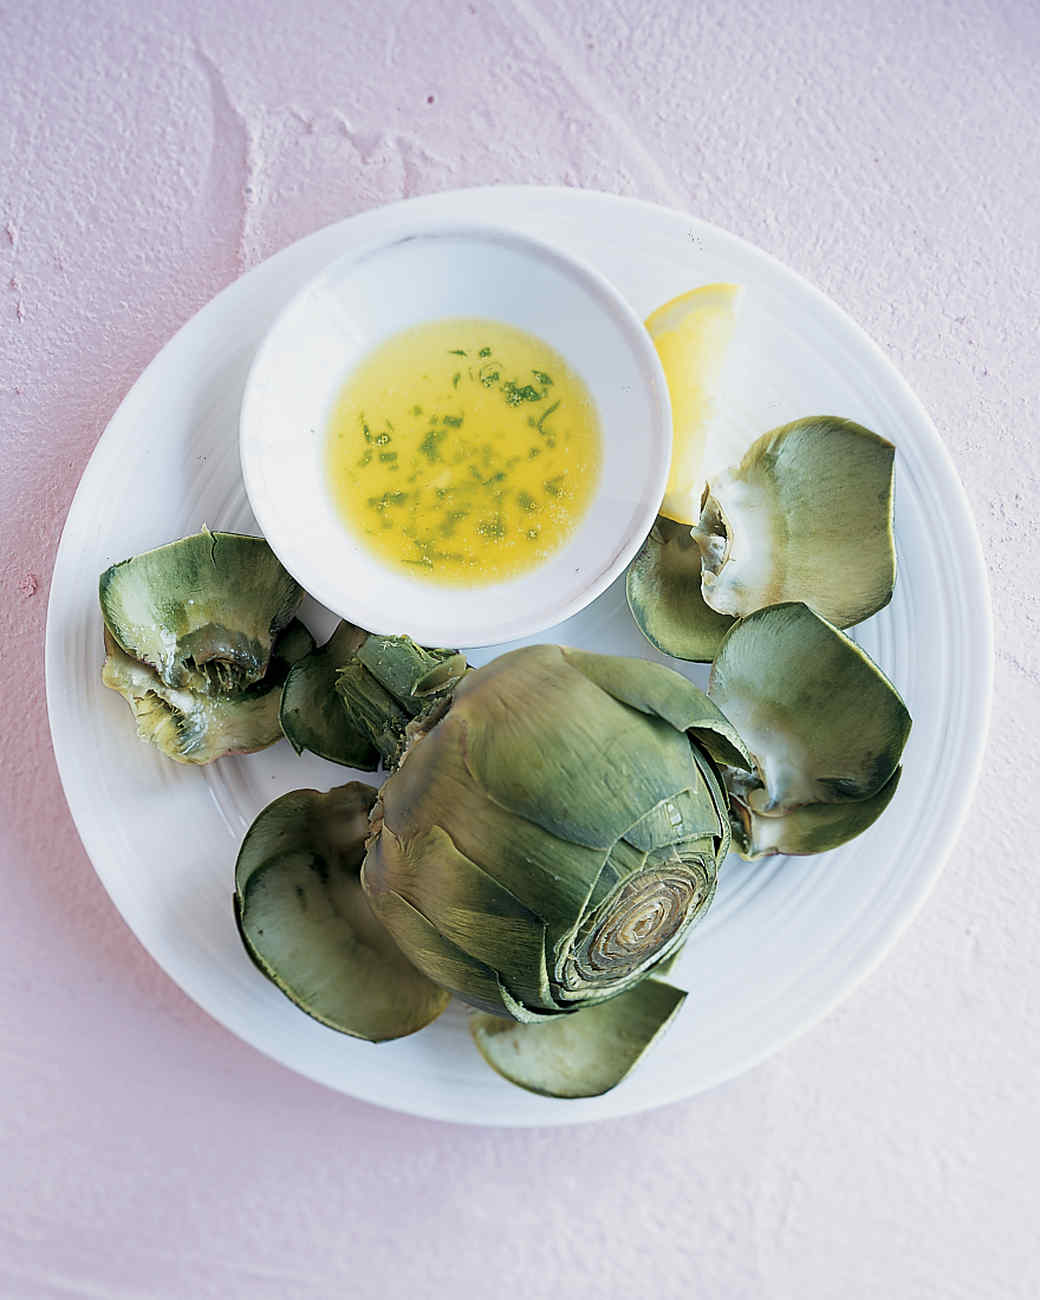 Steamed Artichokes With Tarragon Butter